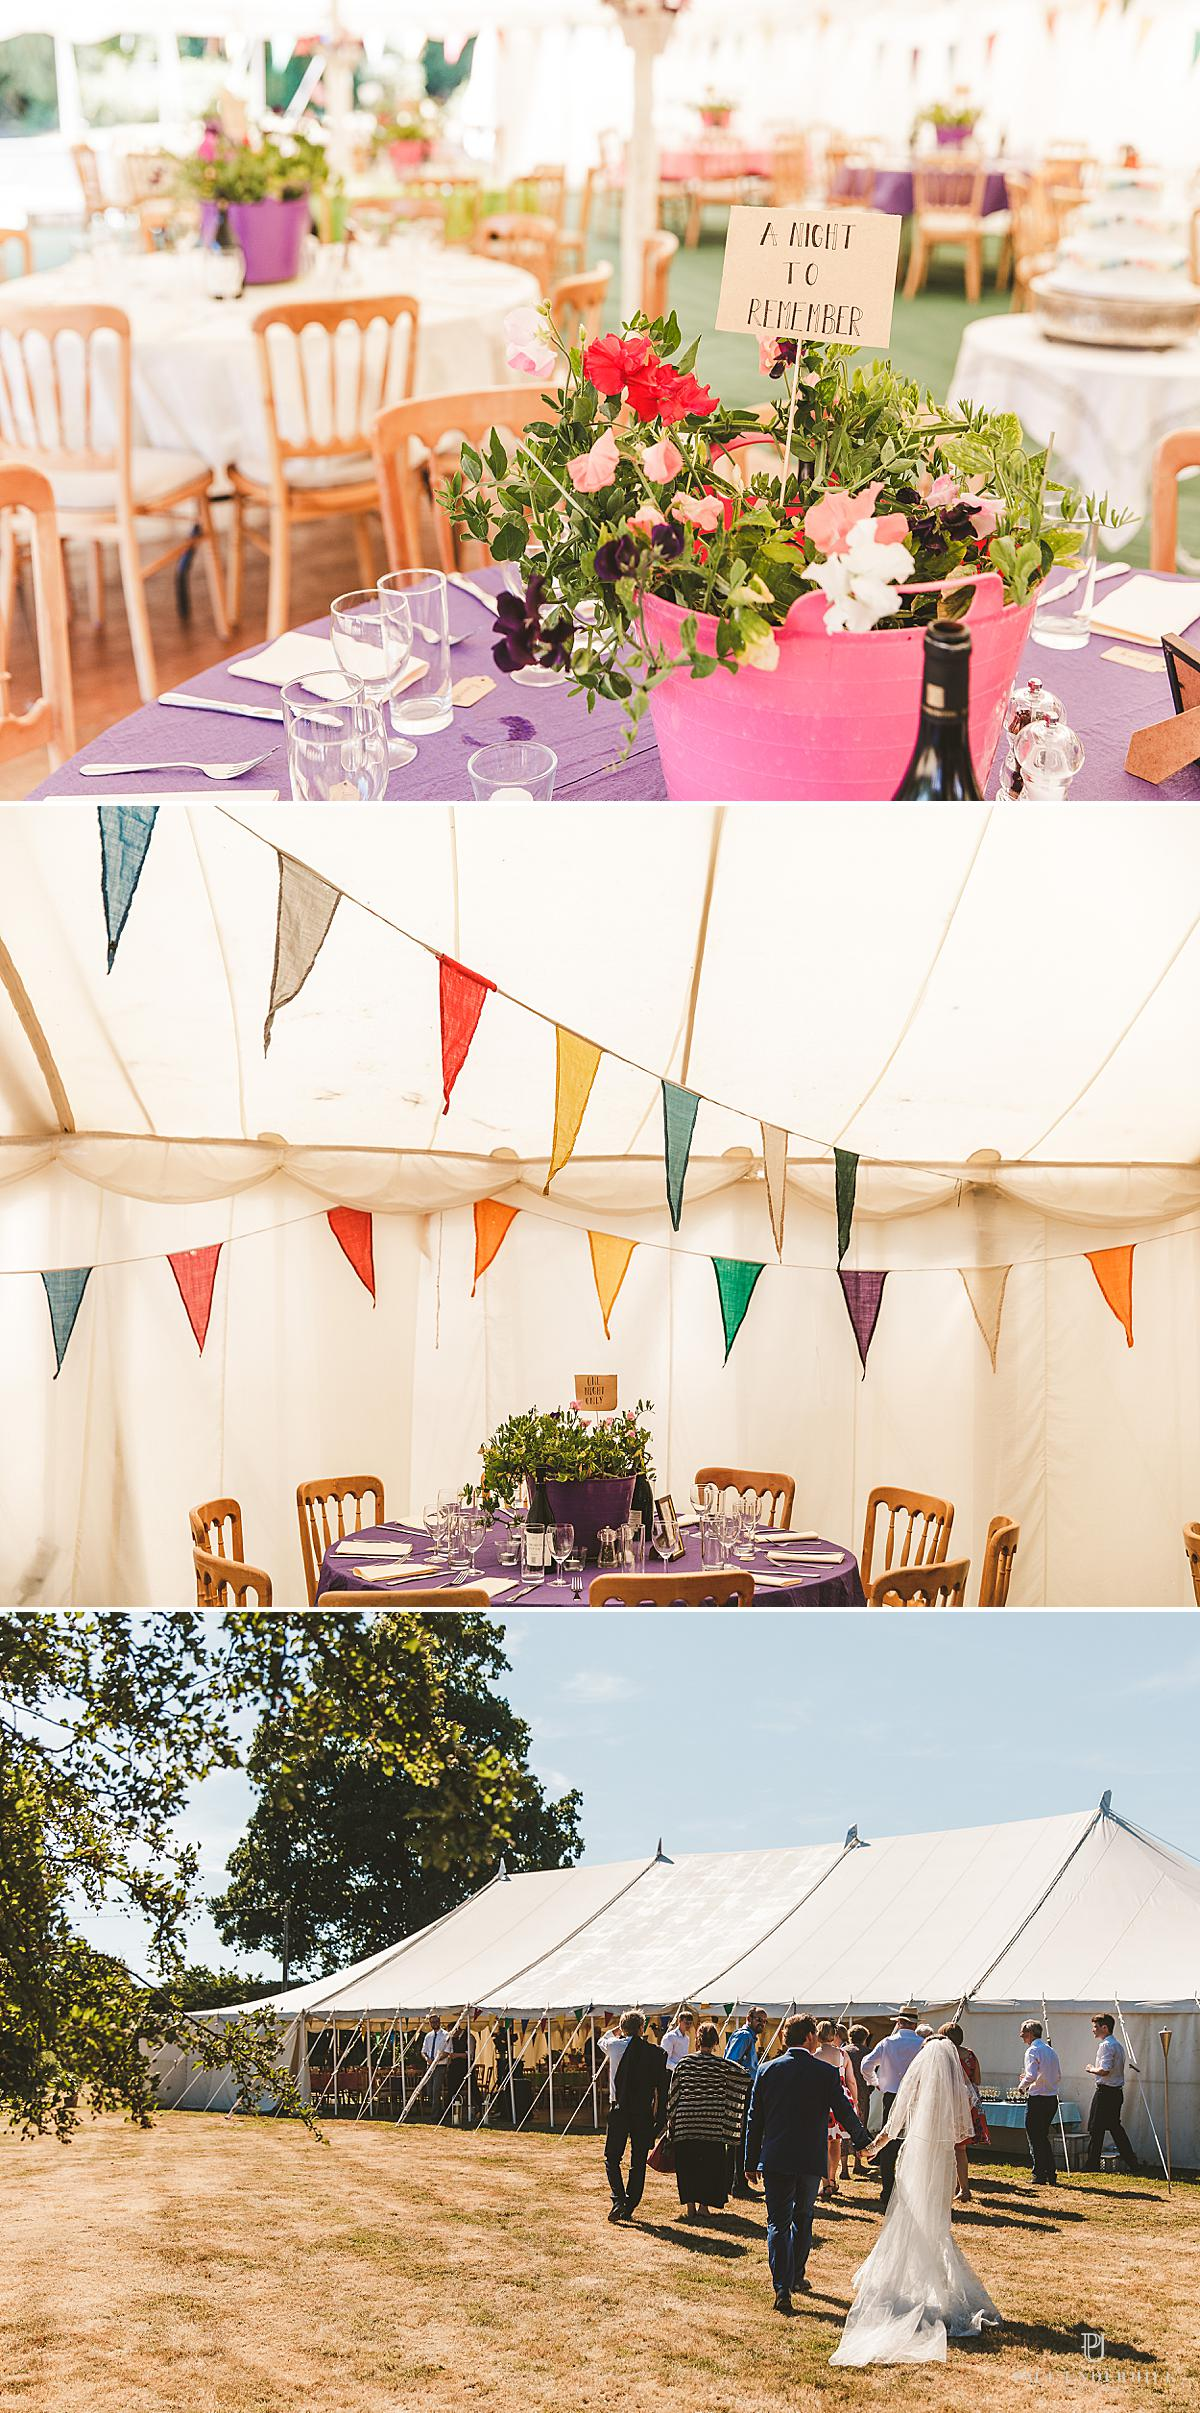 DIY village fate themed wedding Dorset